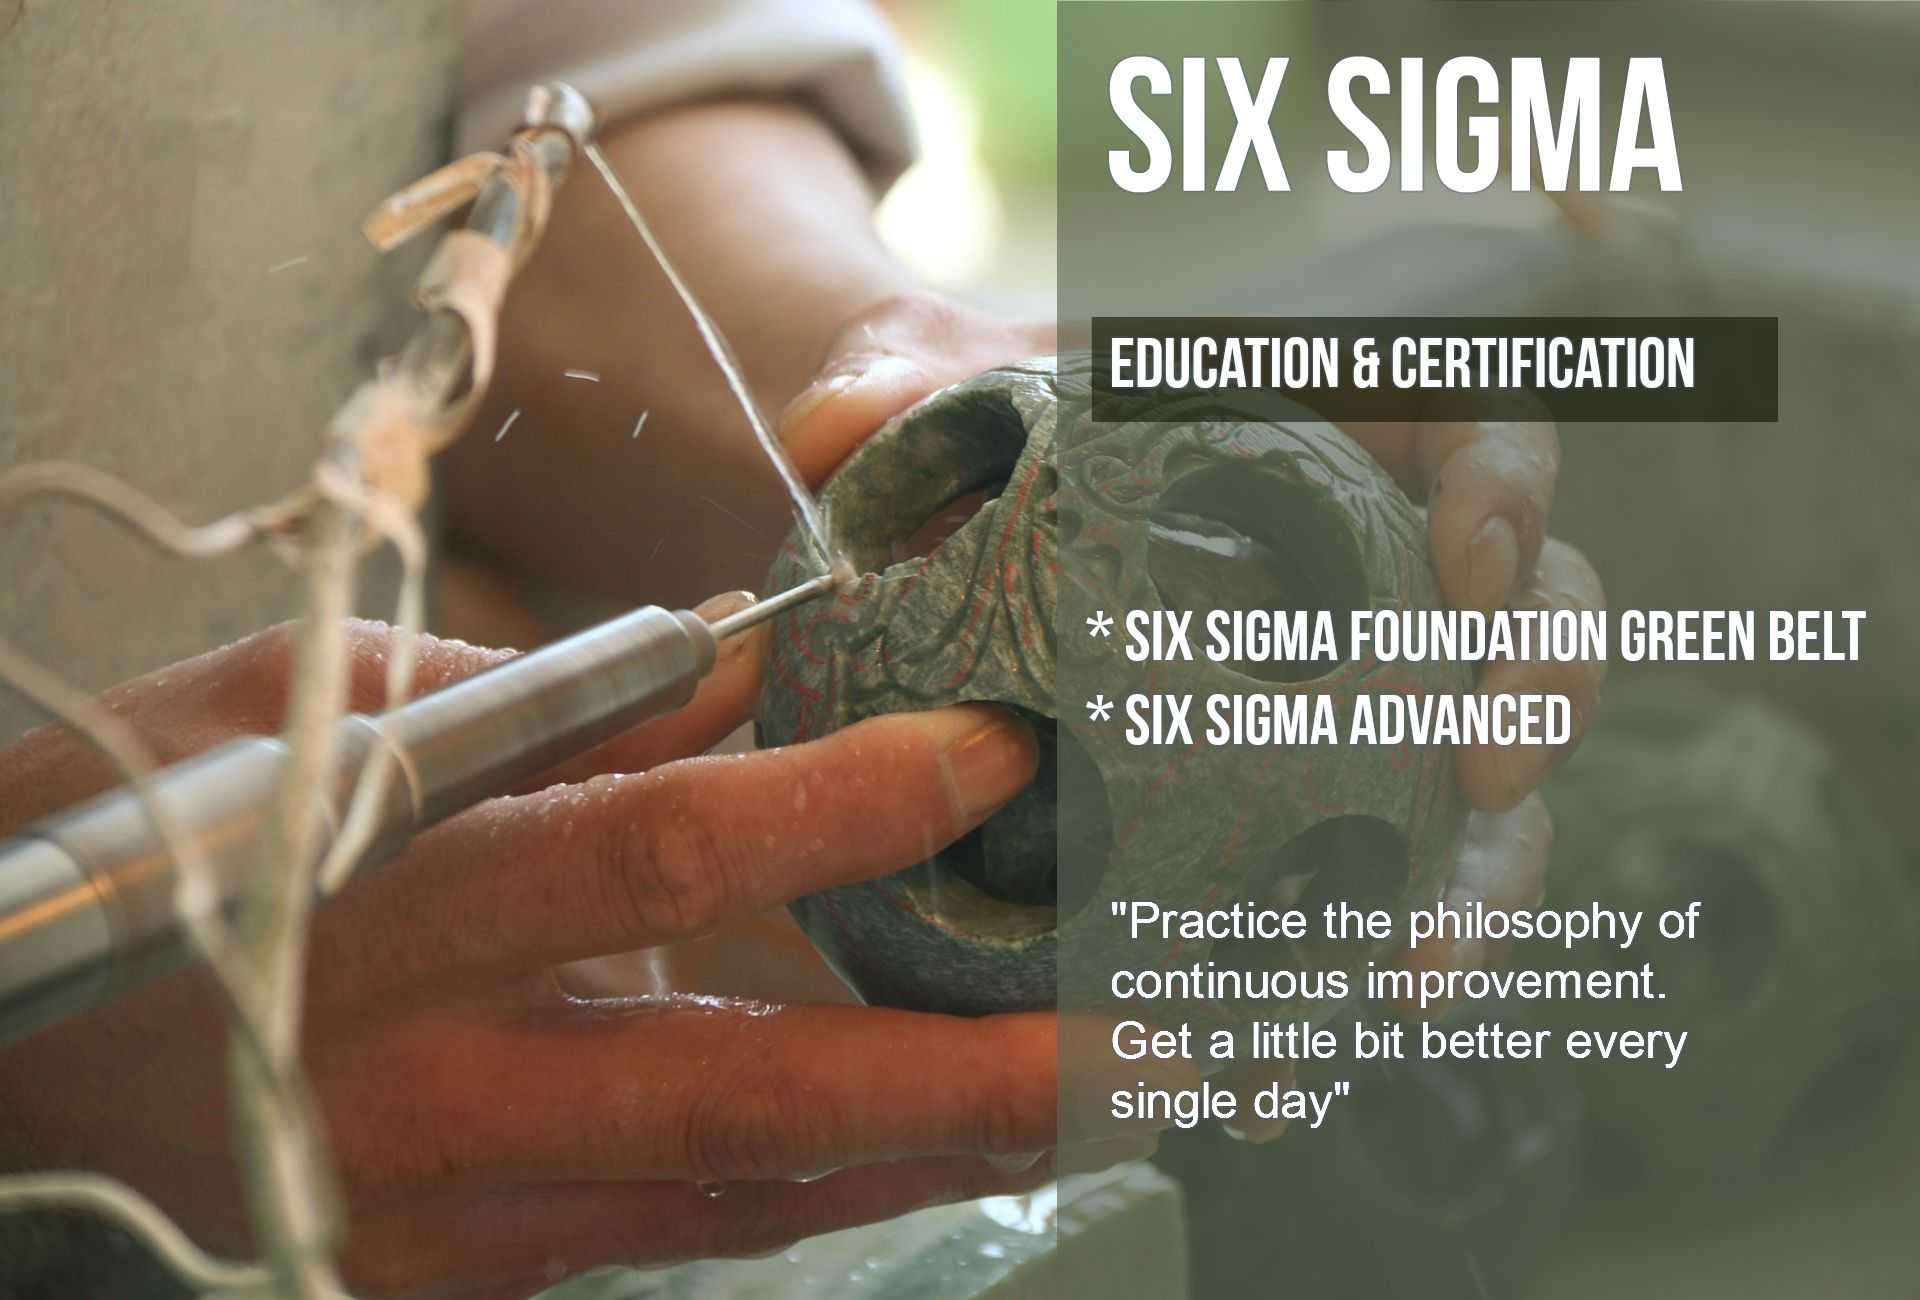 Six Sigma Education and certification, E-learning ( Foundation Green Belt, Advanced)